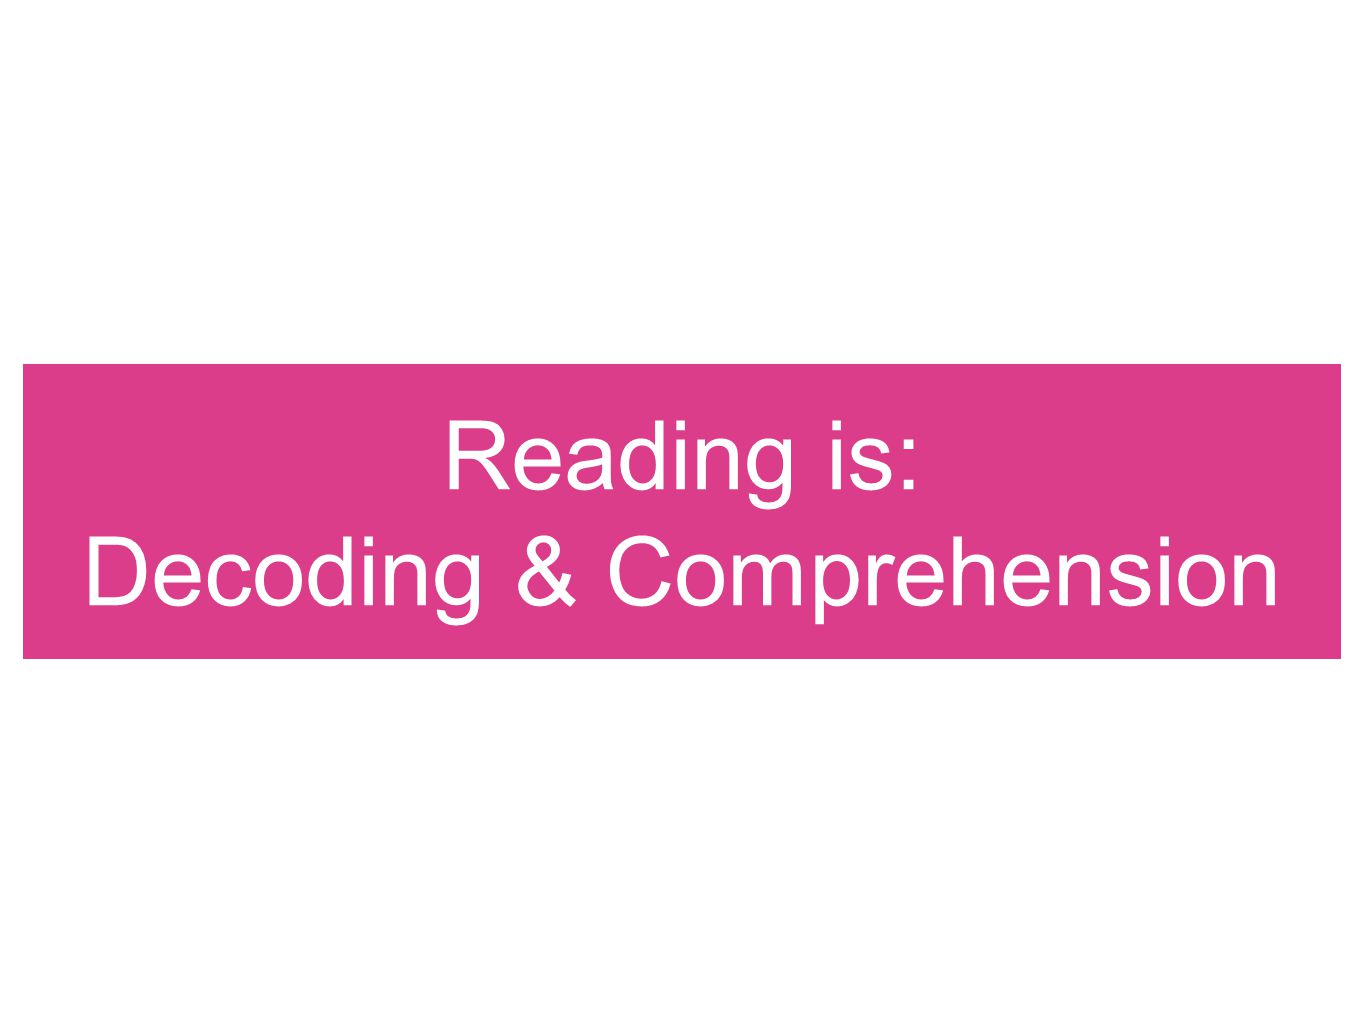 Reading is: Decoding & Comprehension